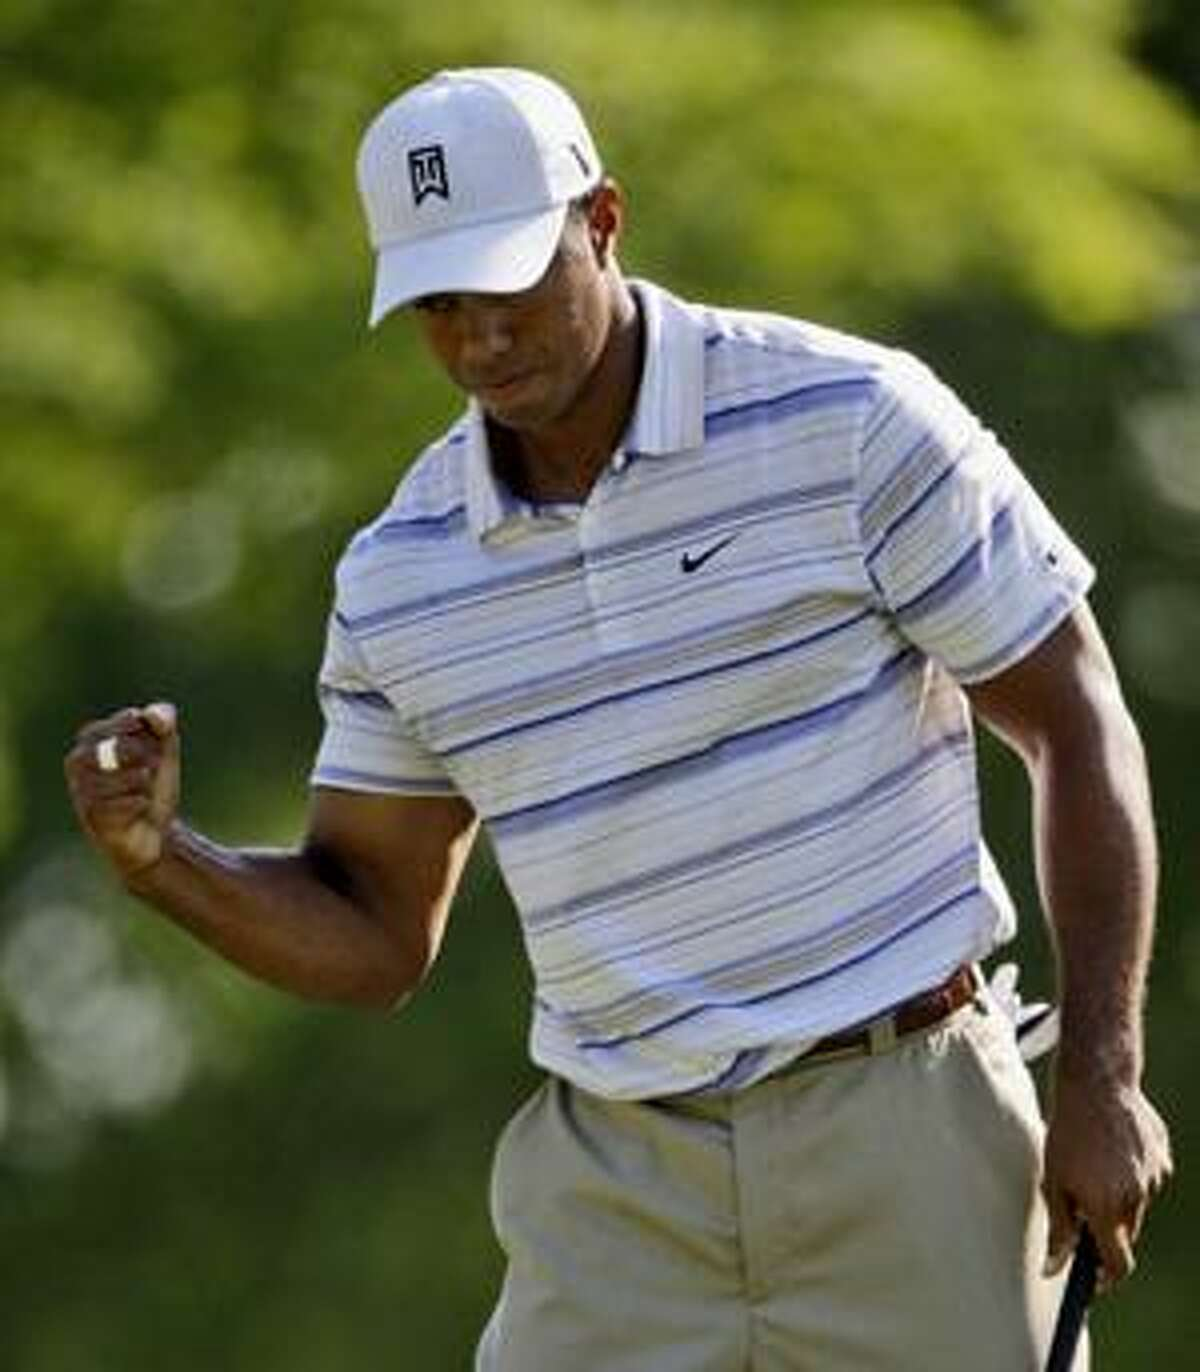 AP Tiger Woods pumps his fist after making par on the 12th hole during the second round of the 91st PGA Championship at the Hazeltine National Golf Club in Chaska, Minn., Friday.